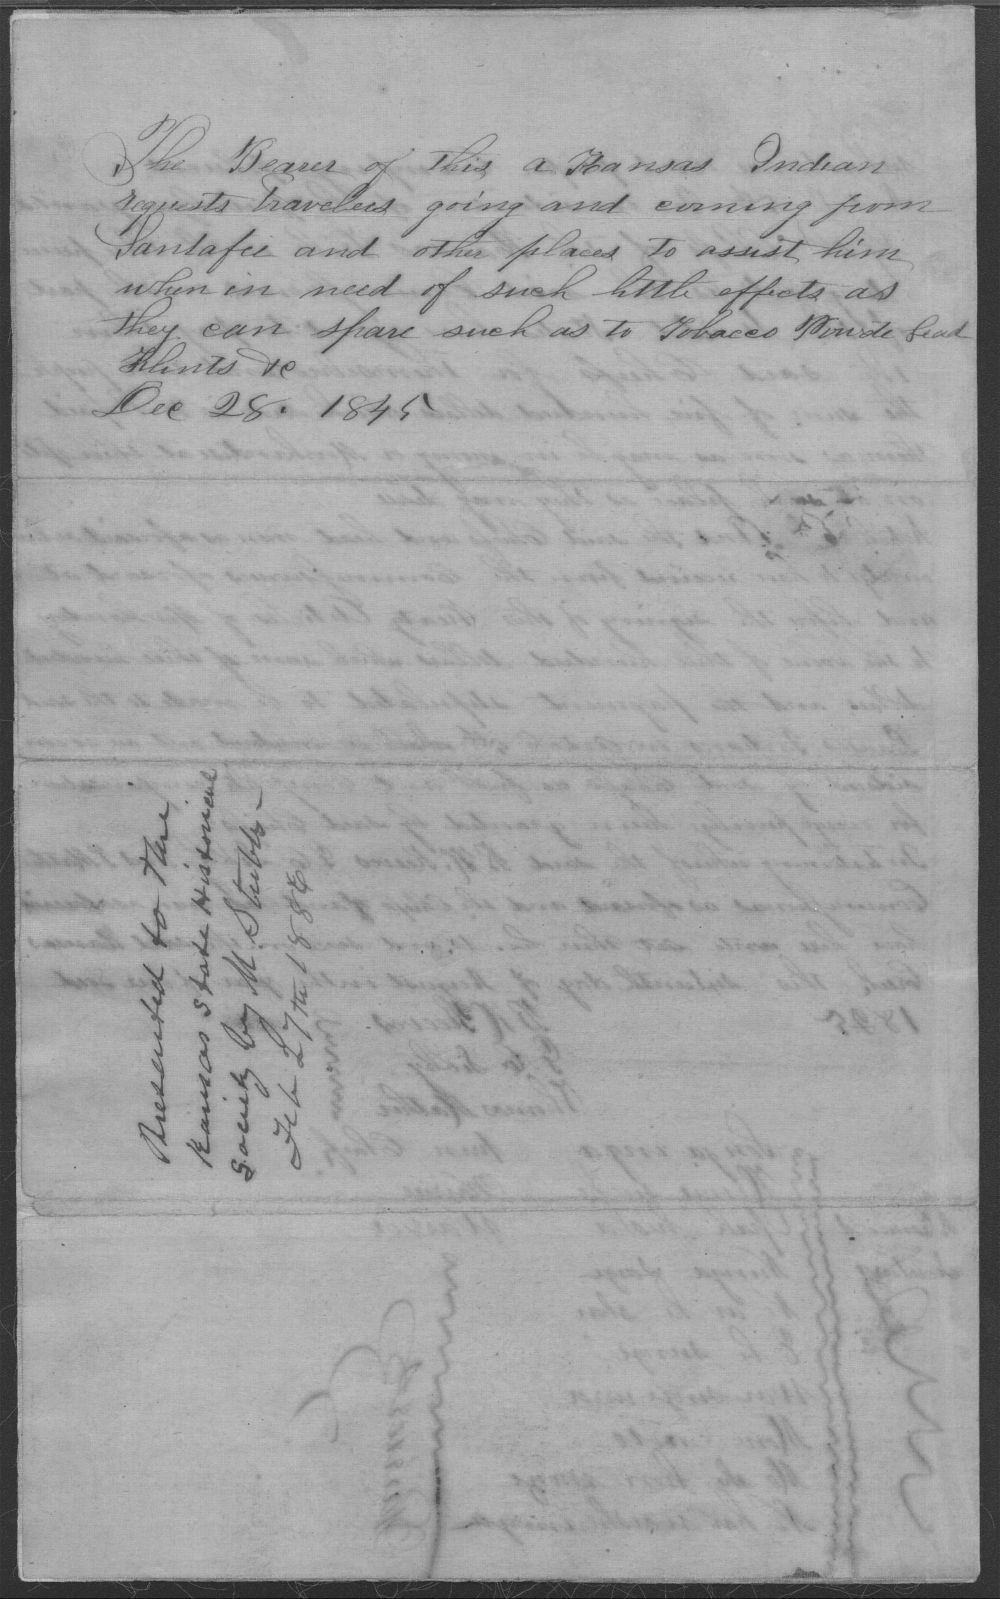 Treaty between the U.S. government and Kansa tribe - 4